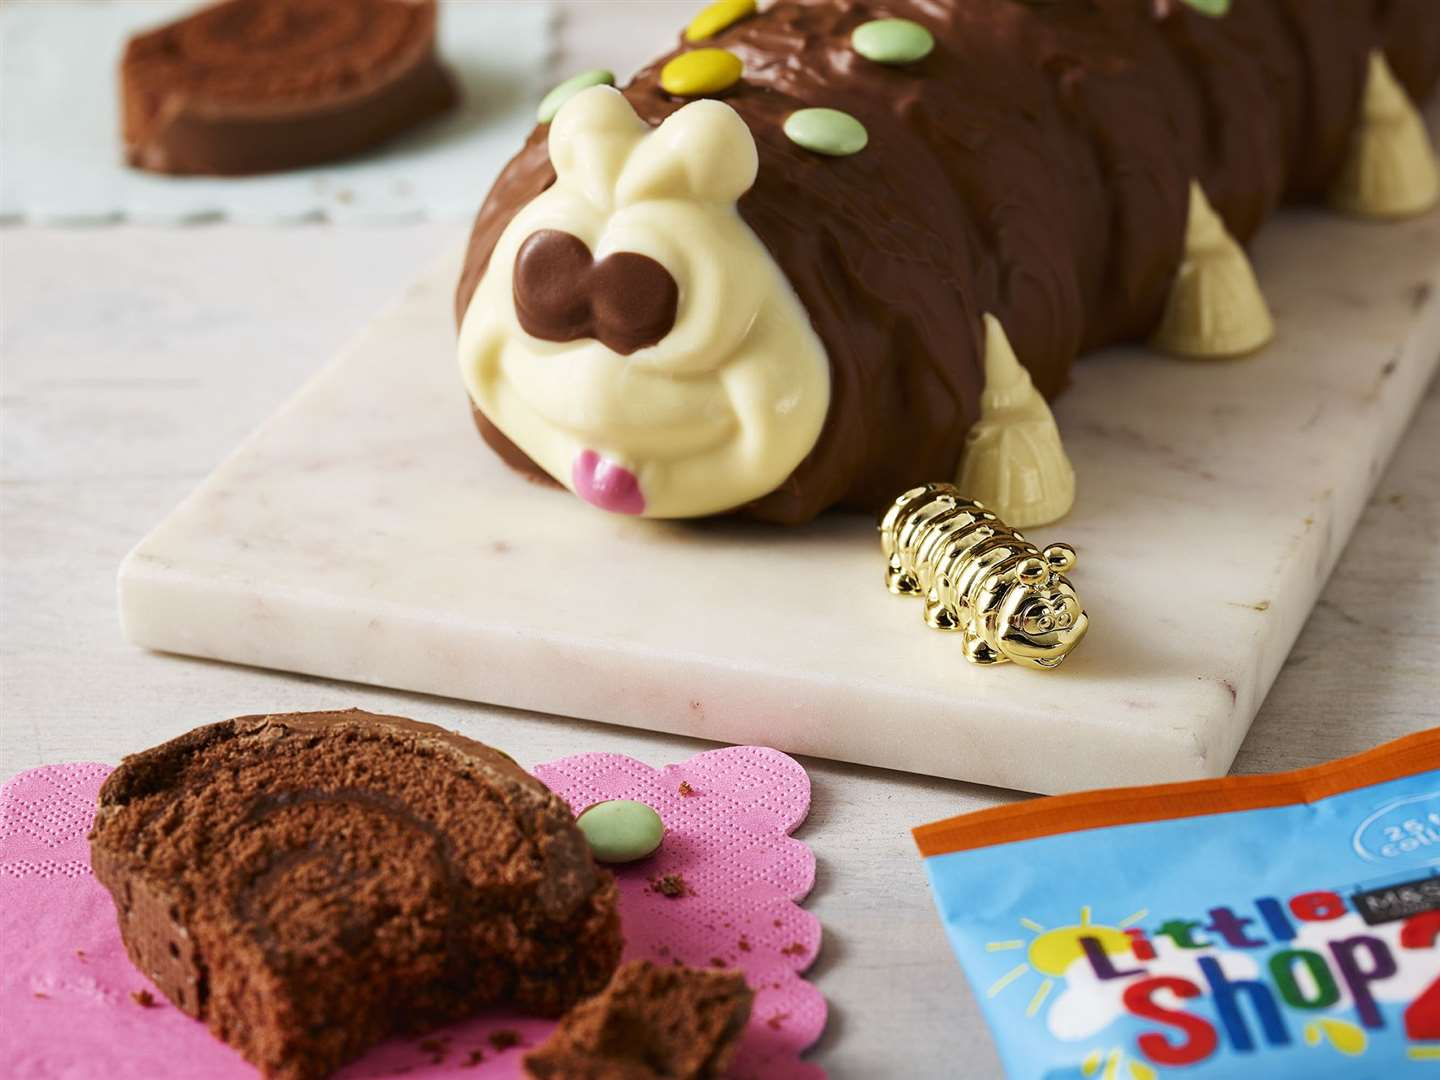 Colin the Caterpillar is a special golden collectable